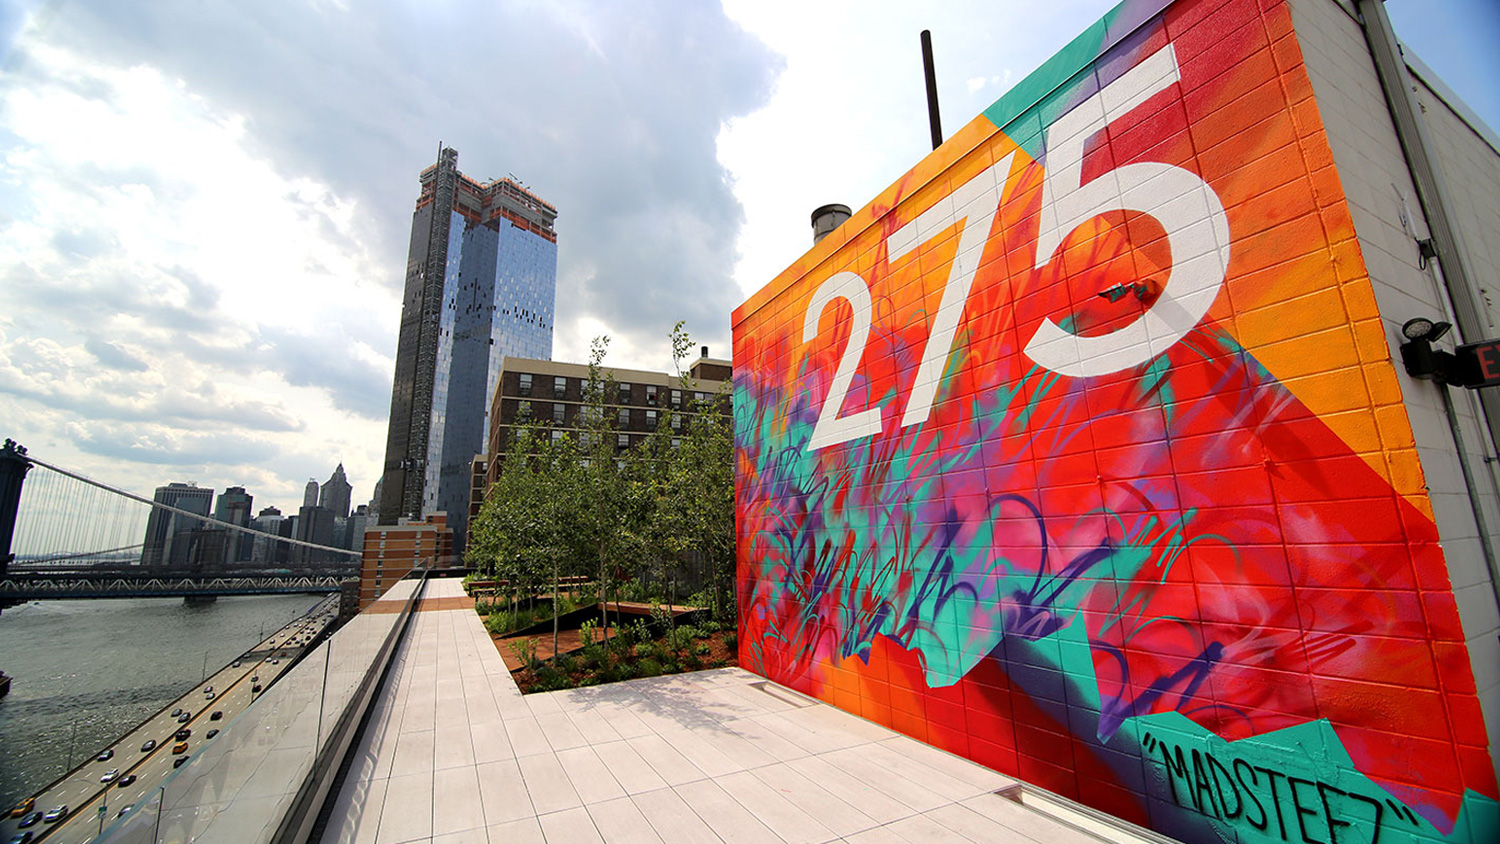 275 SOUTH ROOF -